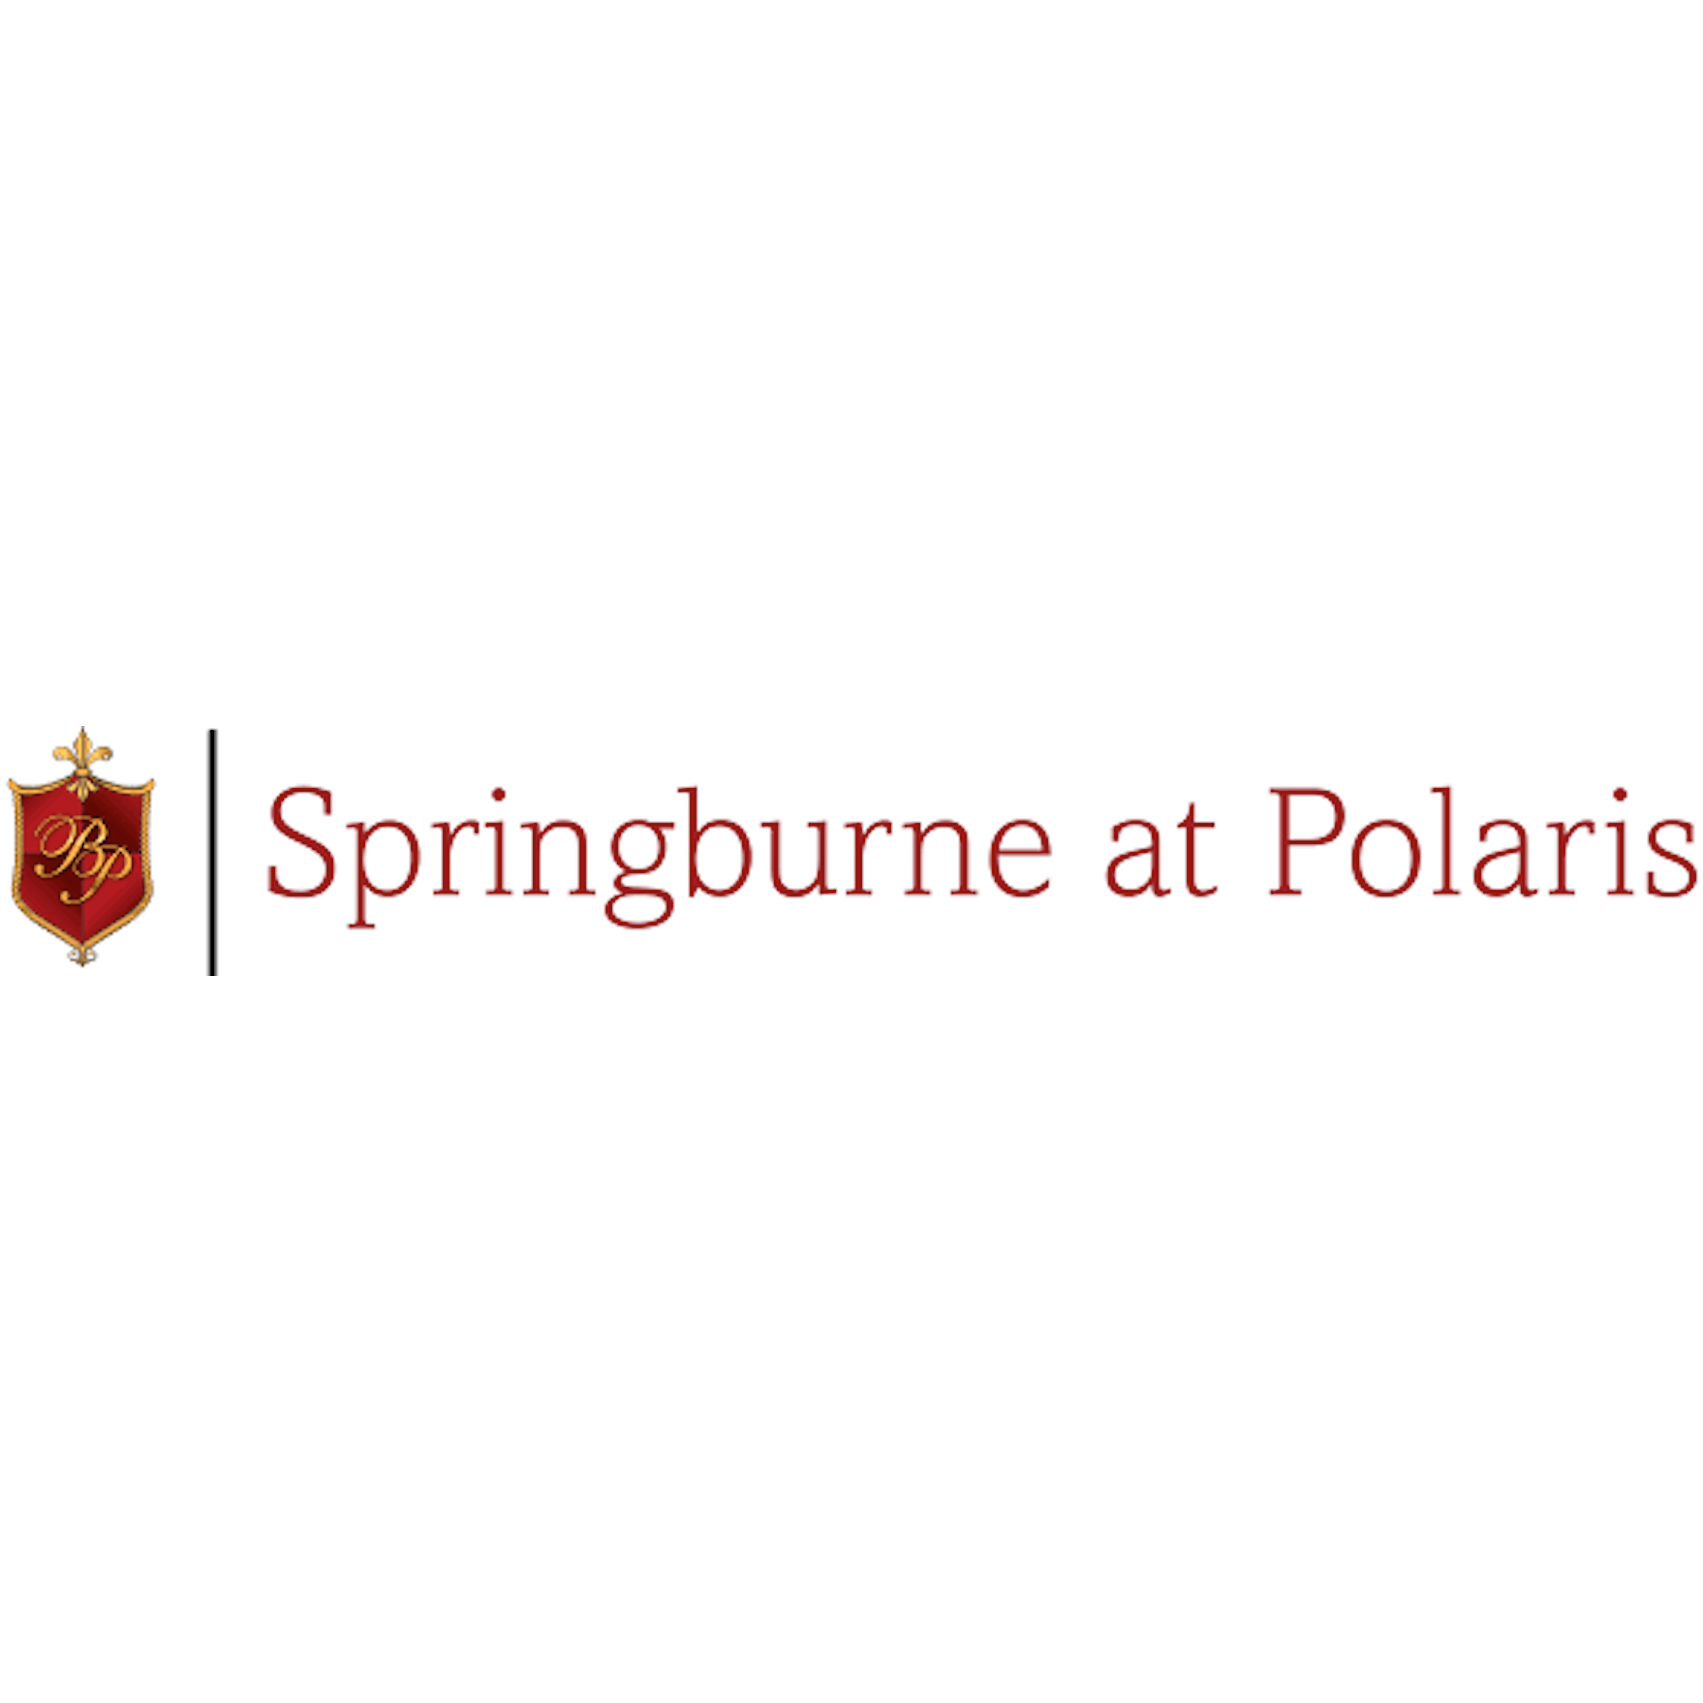 Springburne at Polaris